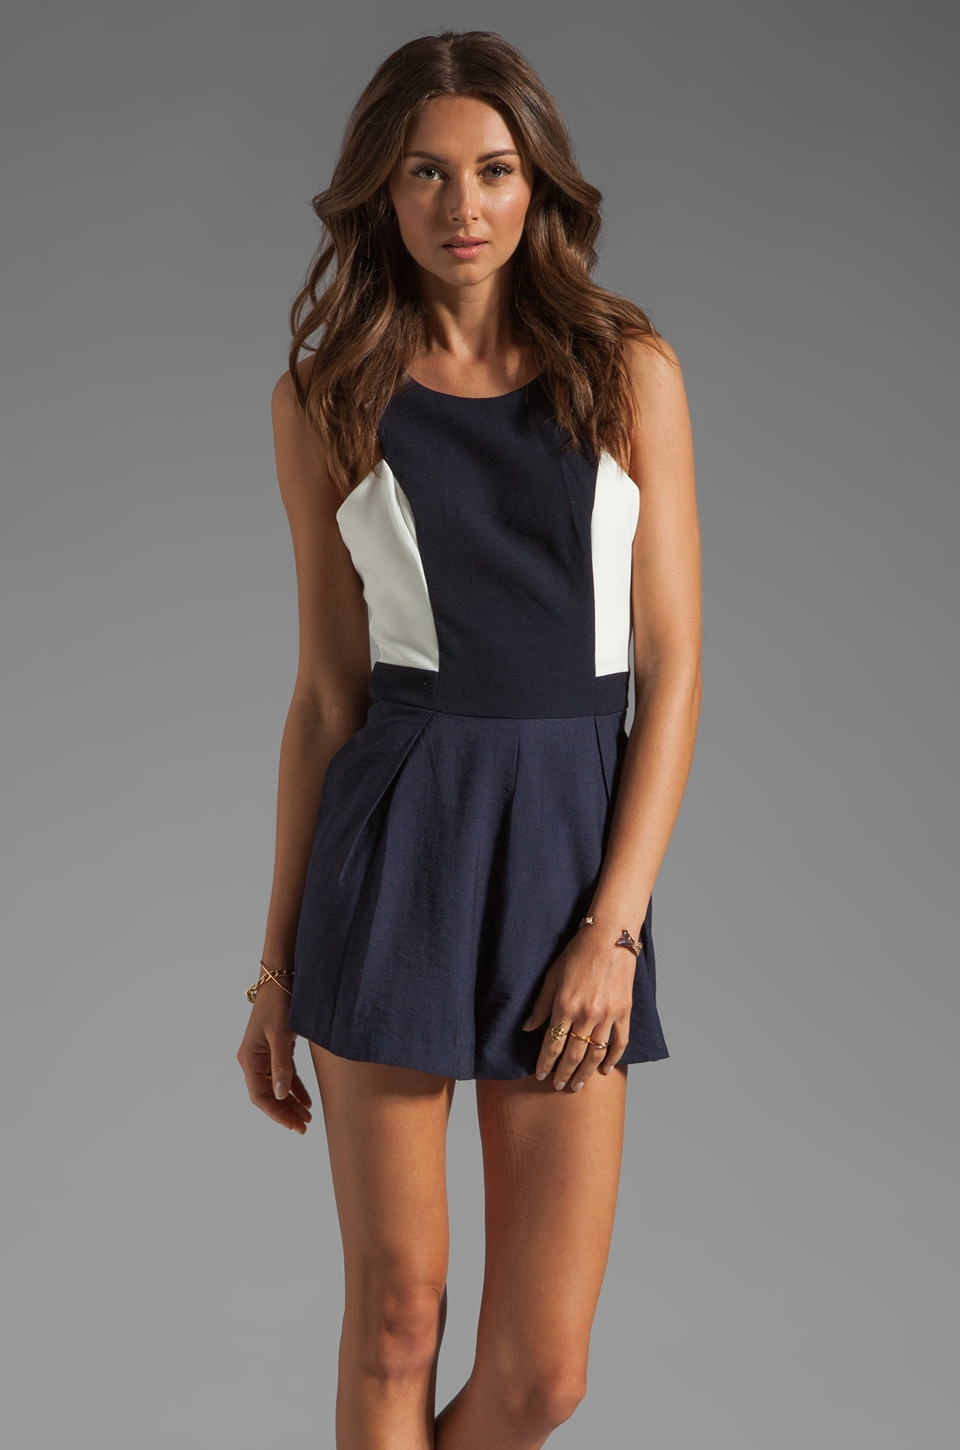 Finders Keepers I've Been Loving Playsuit in Indigo/White